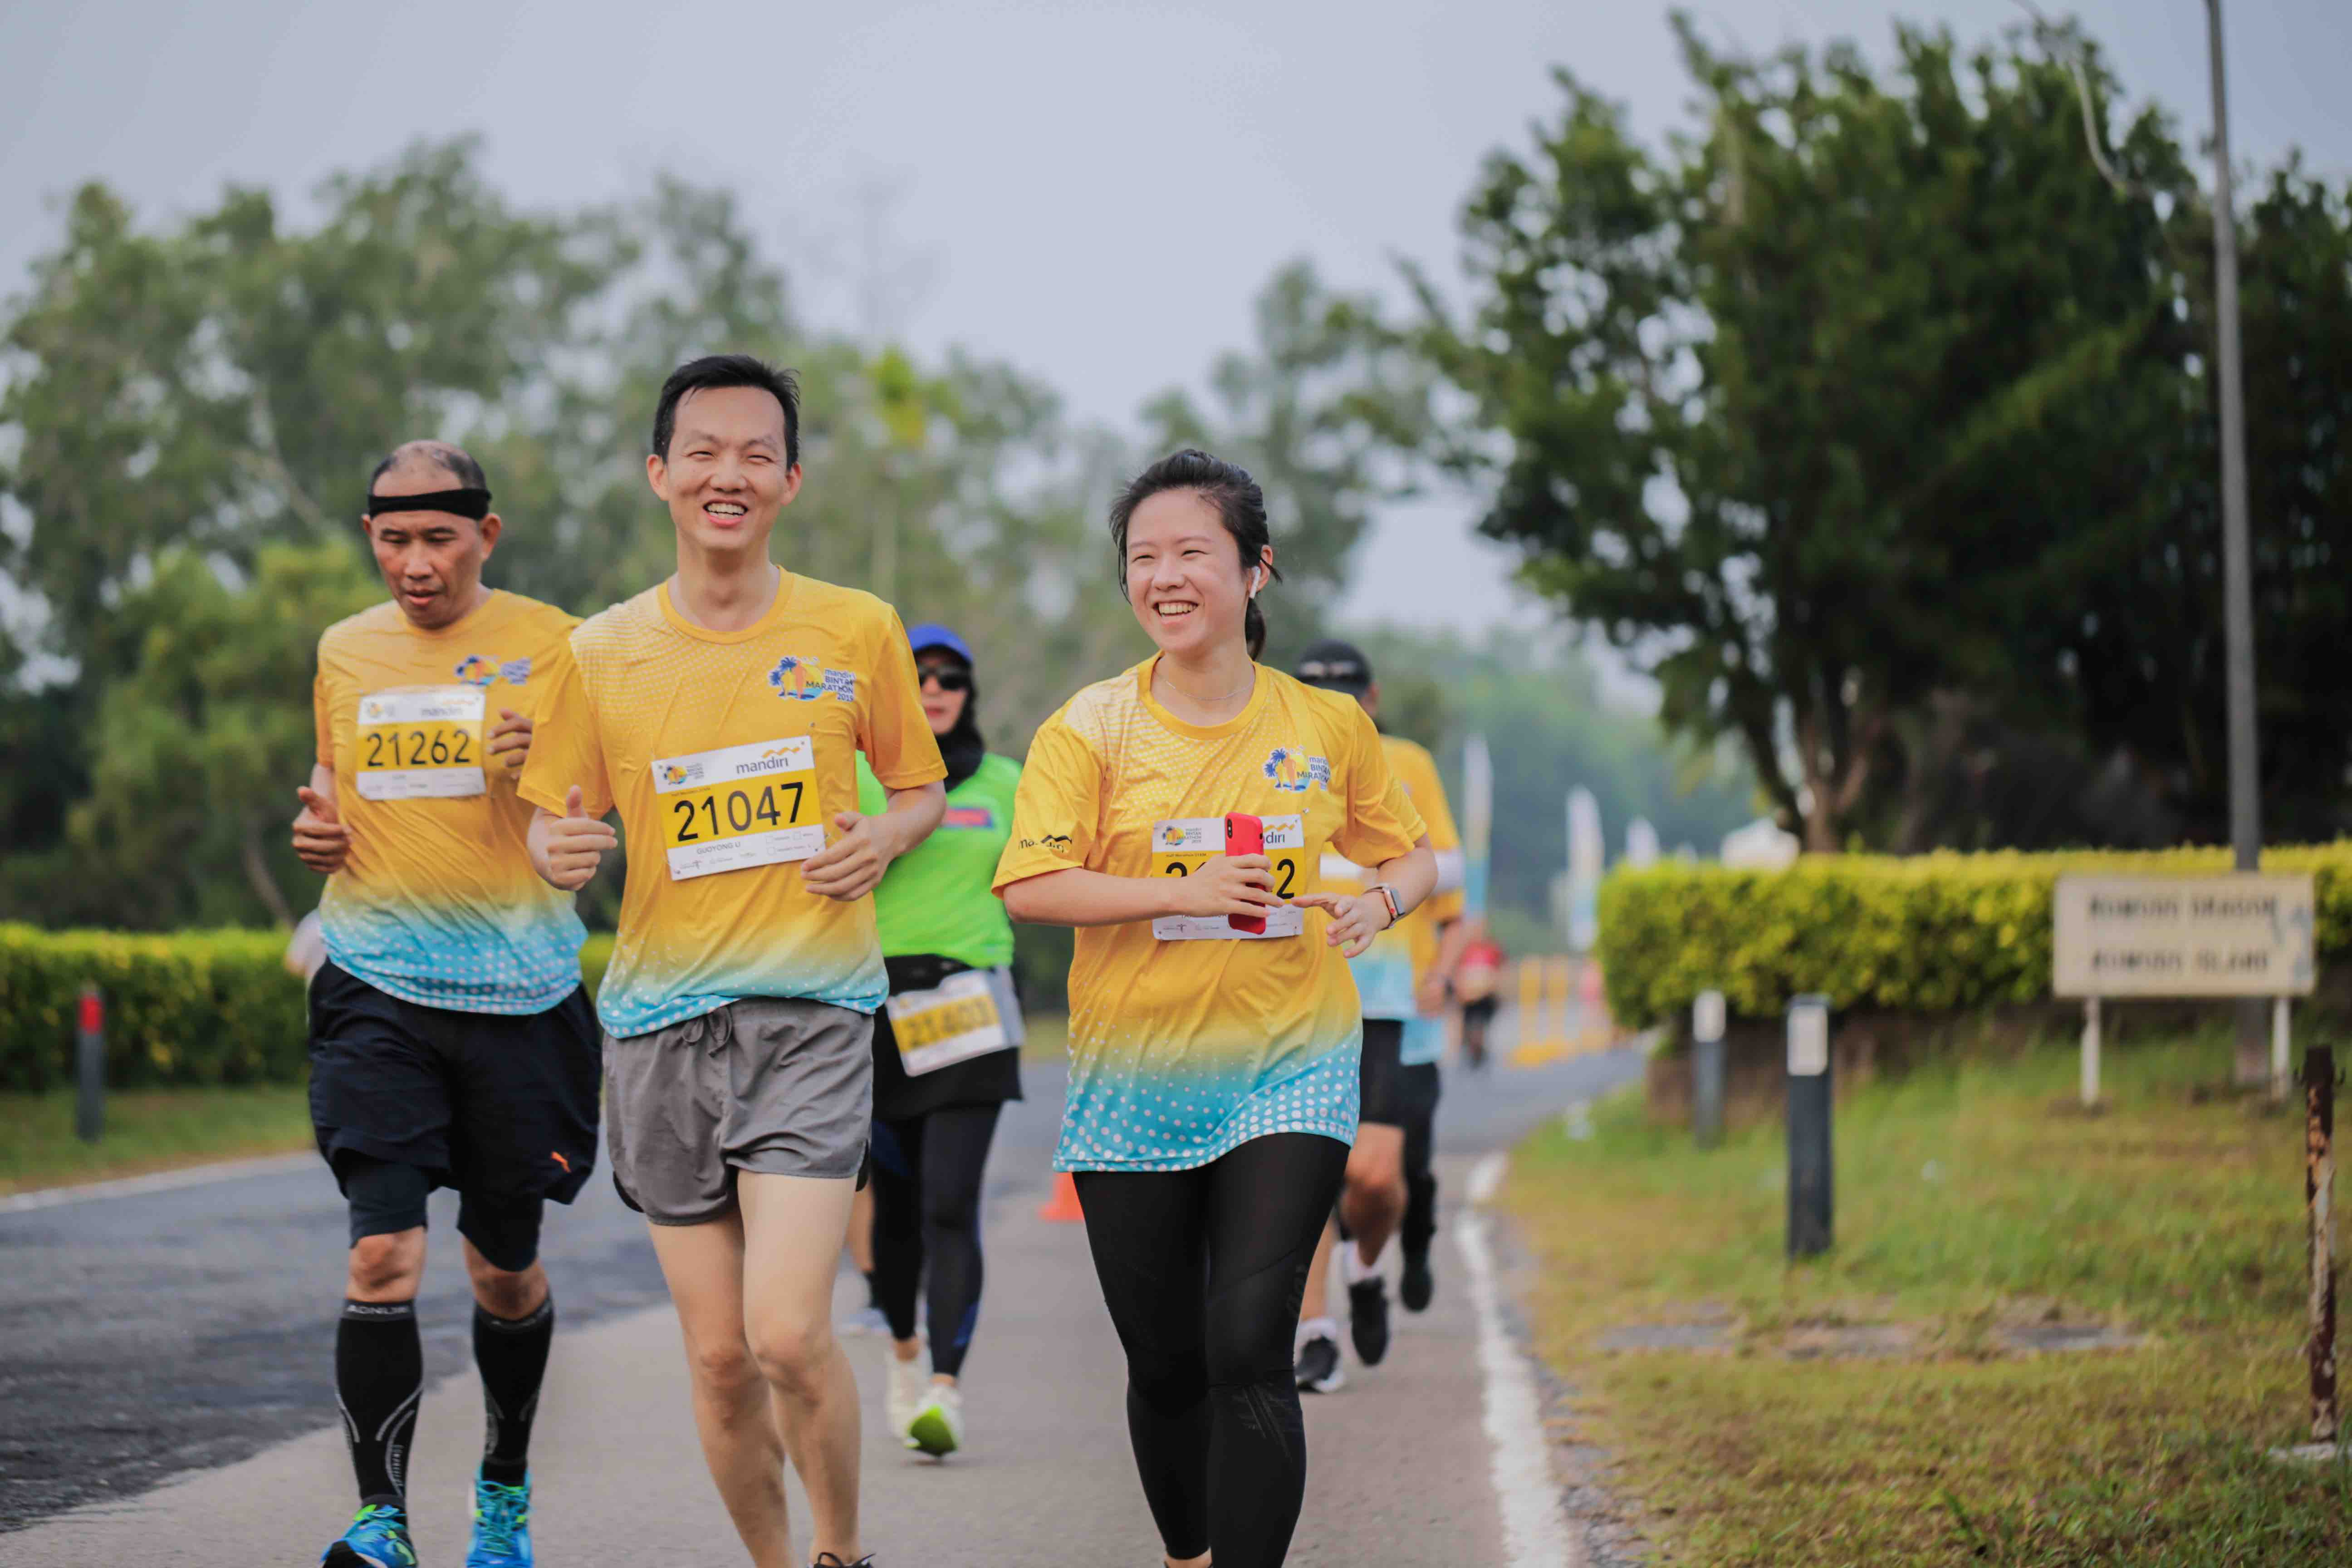 Participants from Singapore at the Mandiri Bintan Marathon, held in Bintan Island on 7 and 8 September 2019